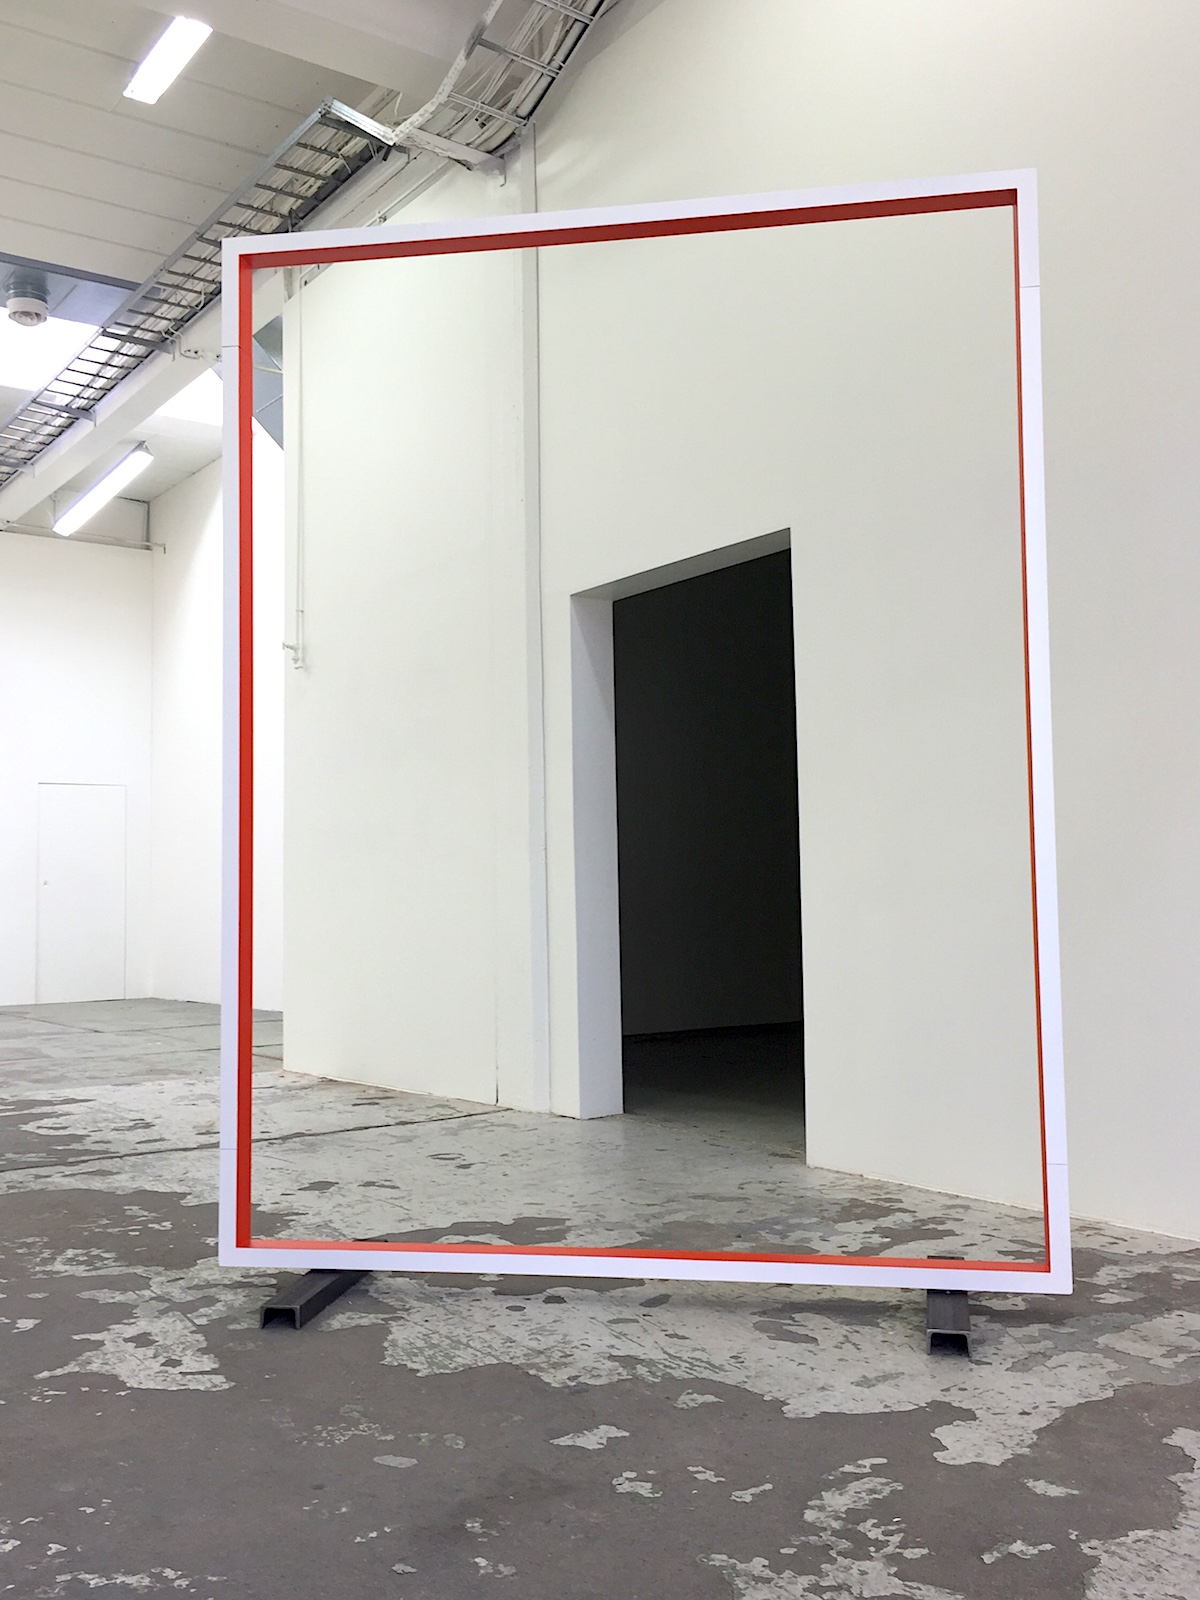 Gate , 2015 Lacquer on aluminium, 220 x 150 cm Bærum Kunsthall, 2017 Photo: Christine Istad